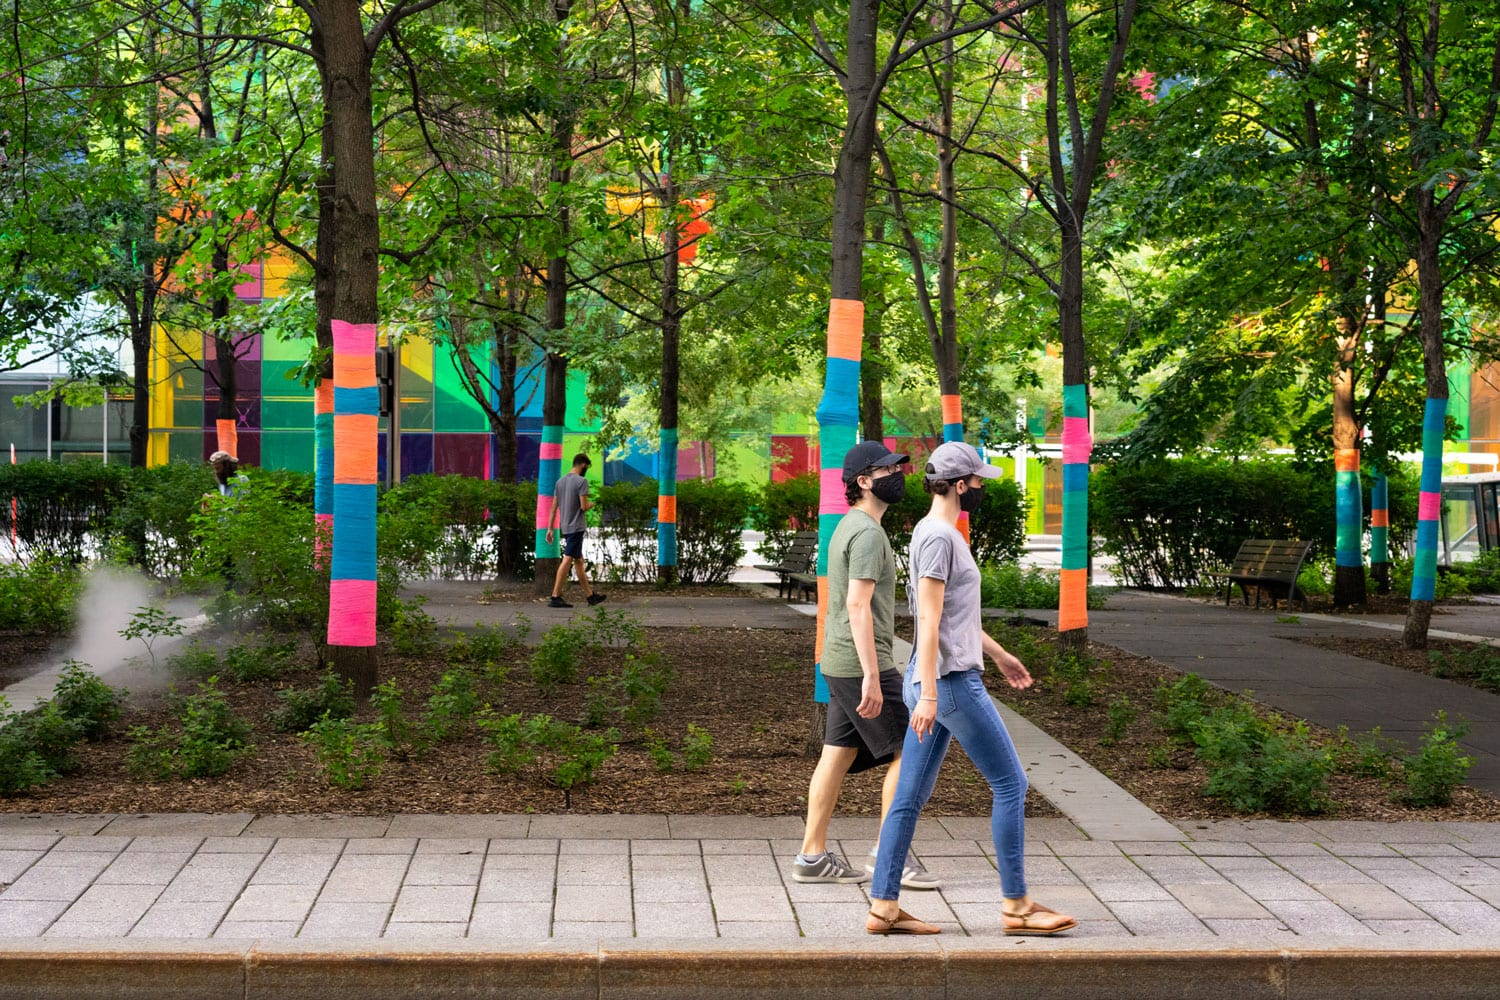 Public Art & Design Installation - Montreal - Public Park - Placemaking / MASSIVart & Judith Portier / Photo by Olivier Blouin